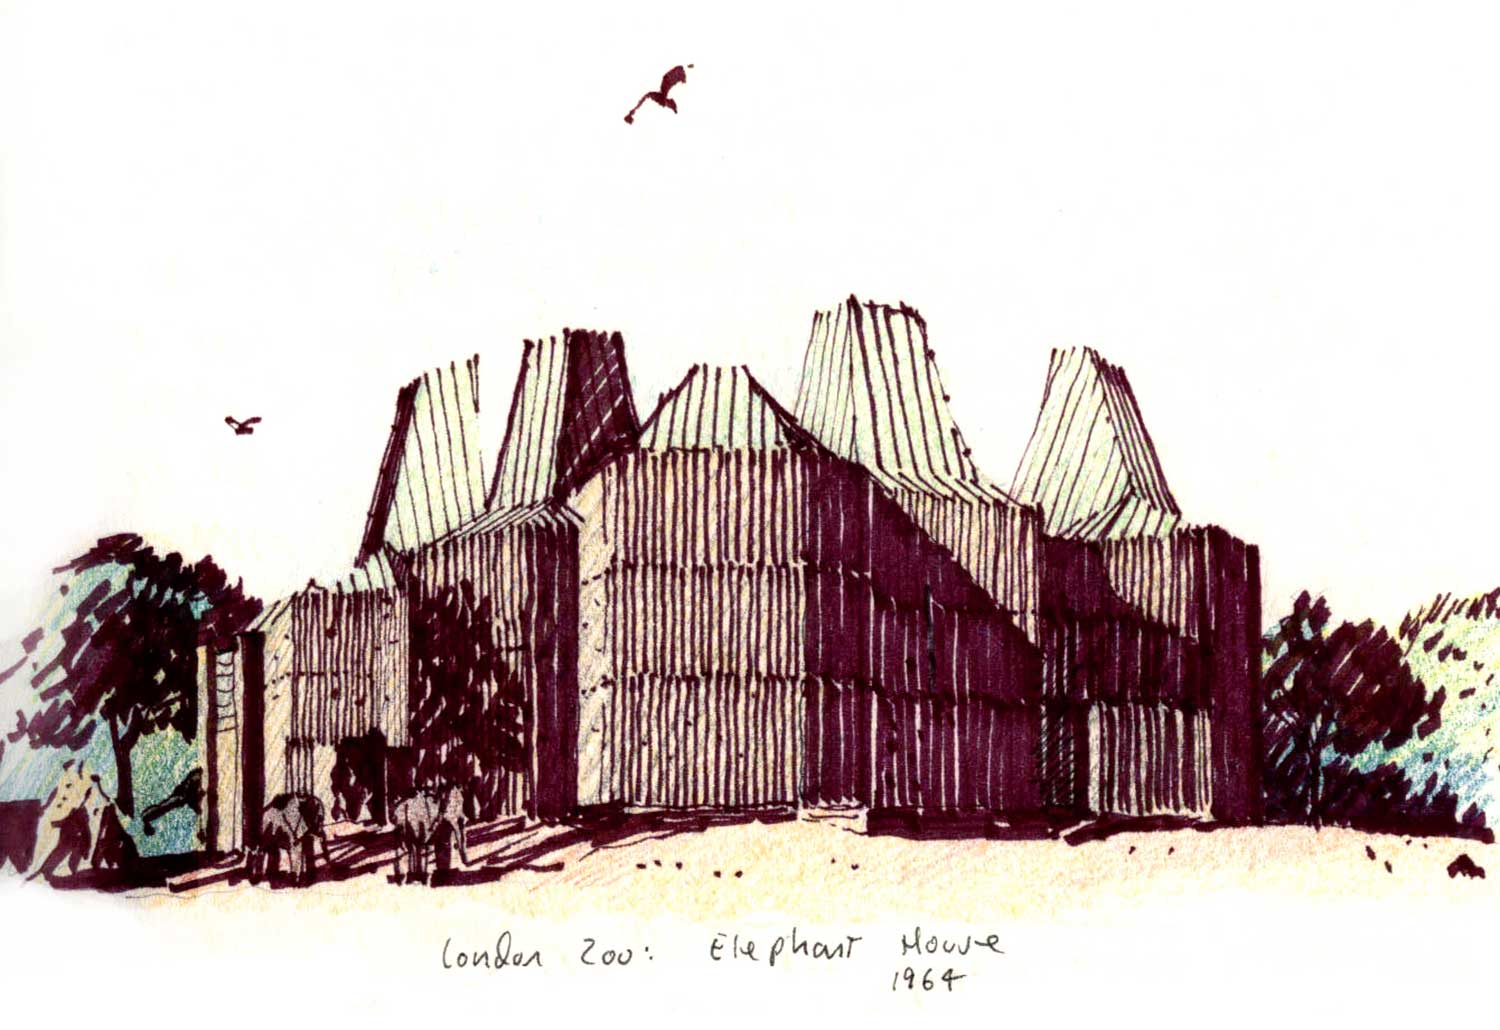 Elephant House, London Zoo.  Felt-tip pen and colored pencil.